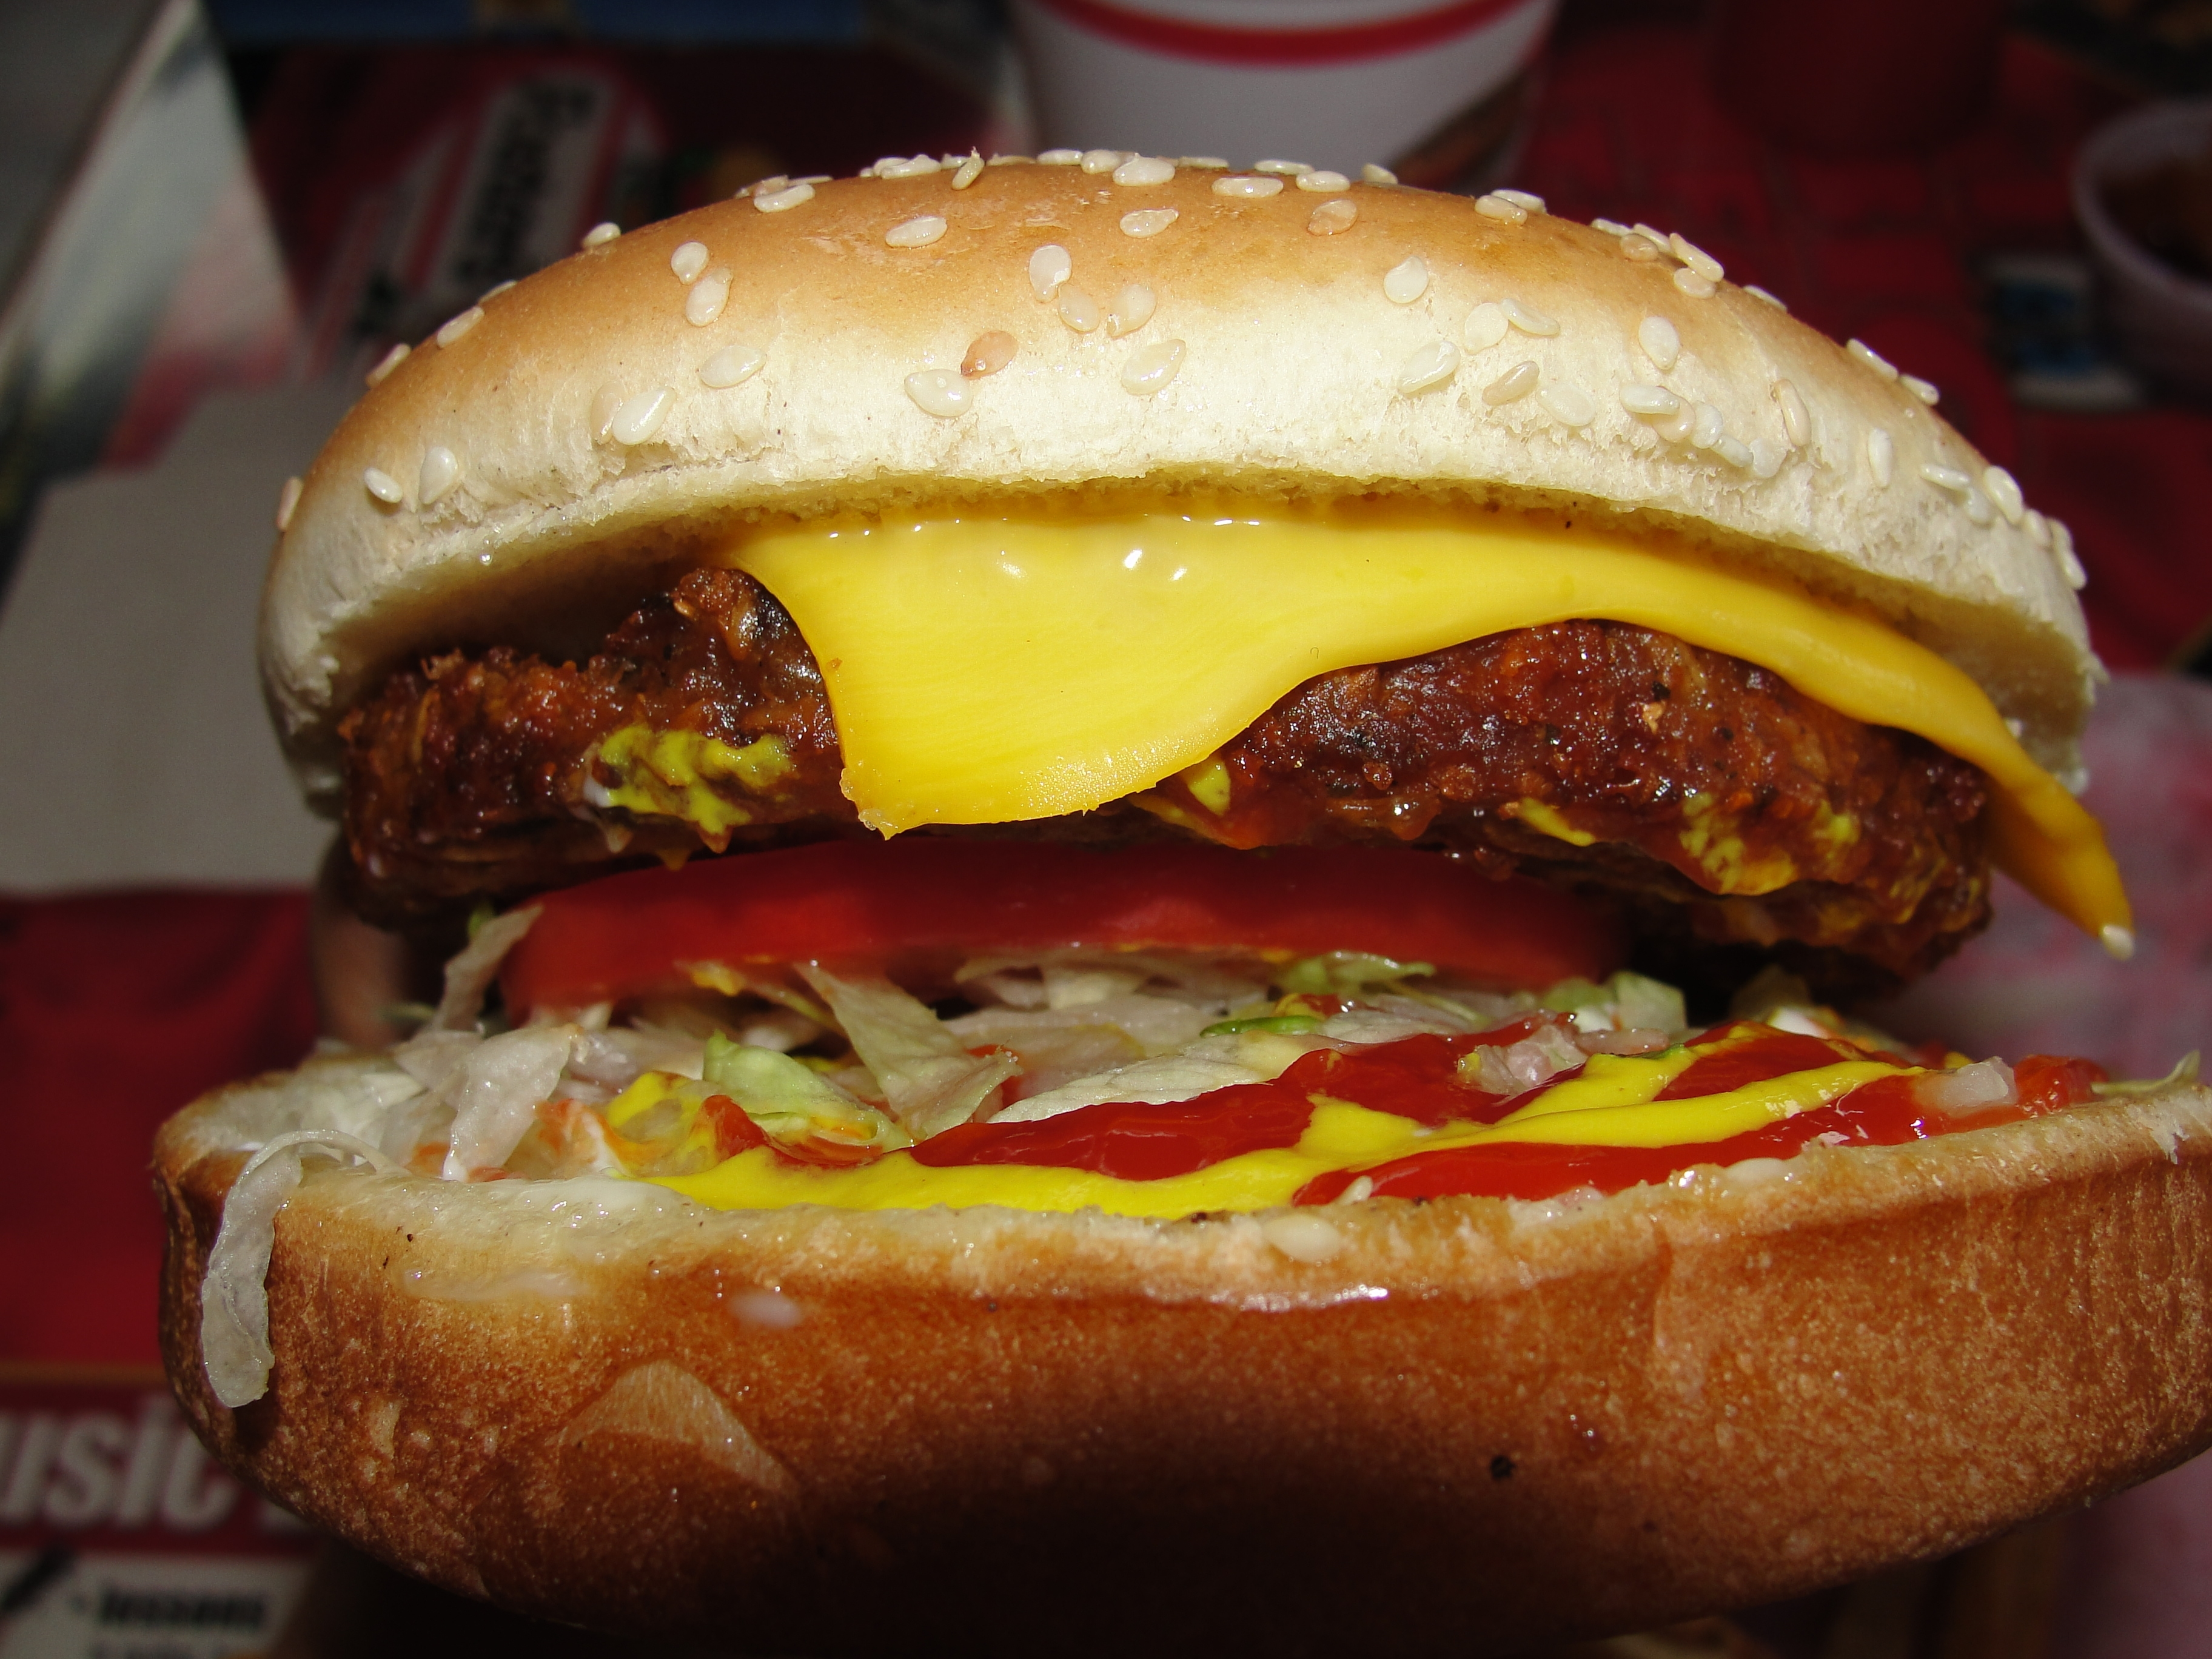 A Mother's Day Meal | Grandma's Backyard within Backyard Garden Burger Foster Grille